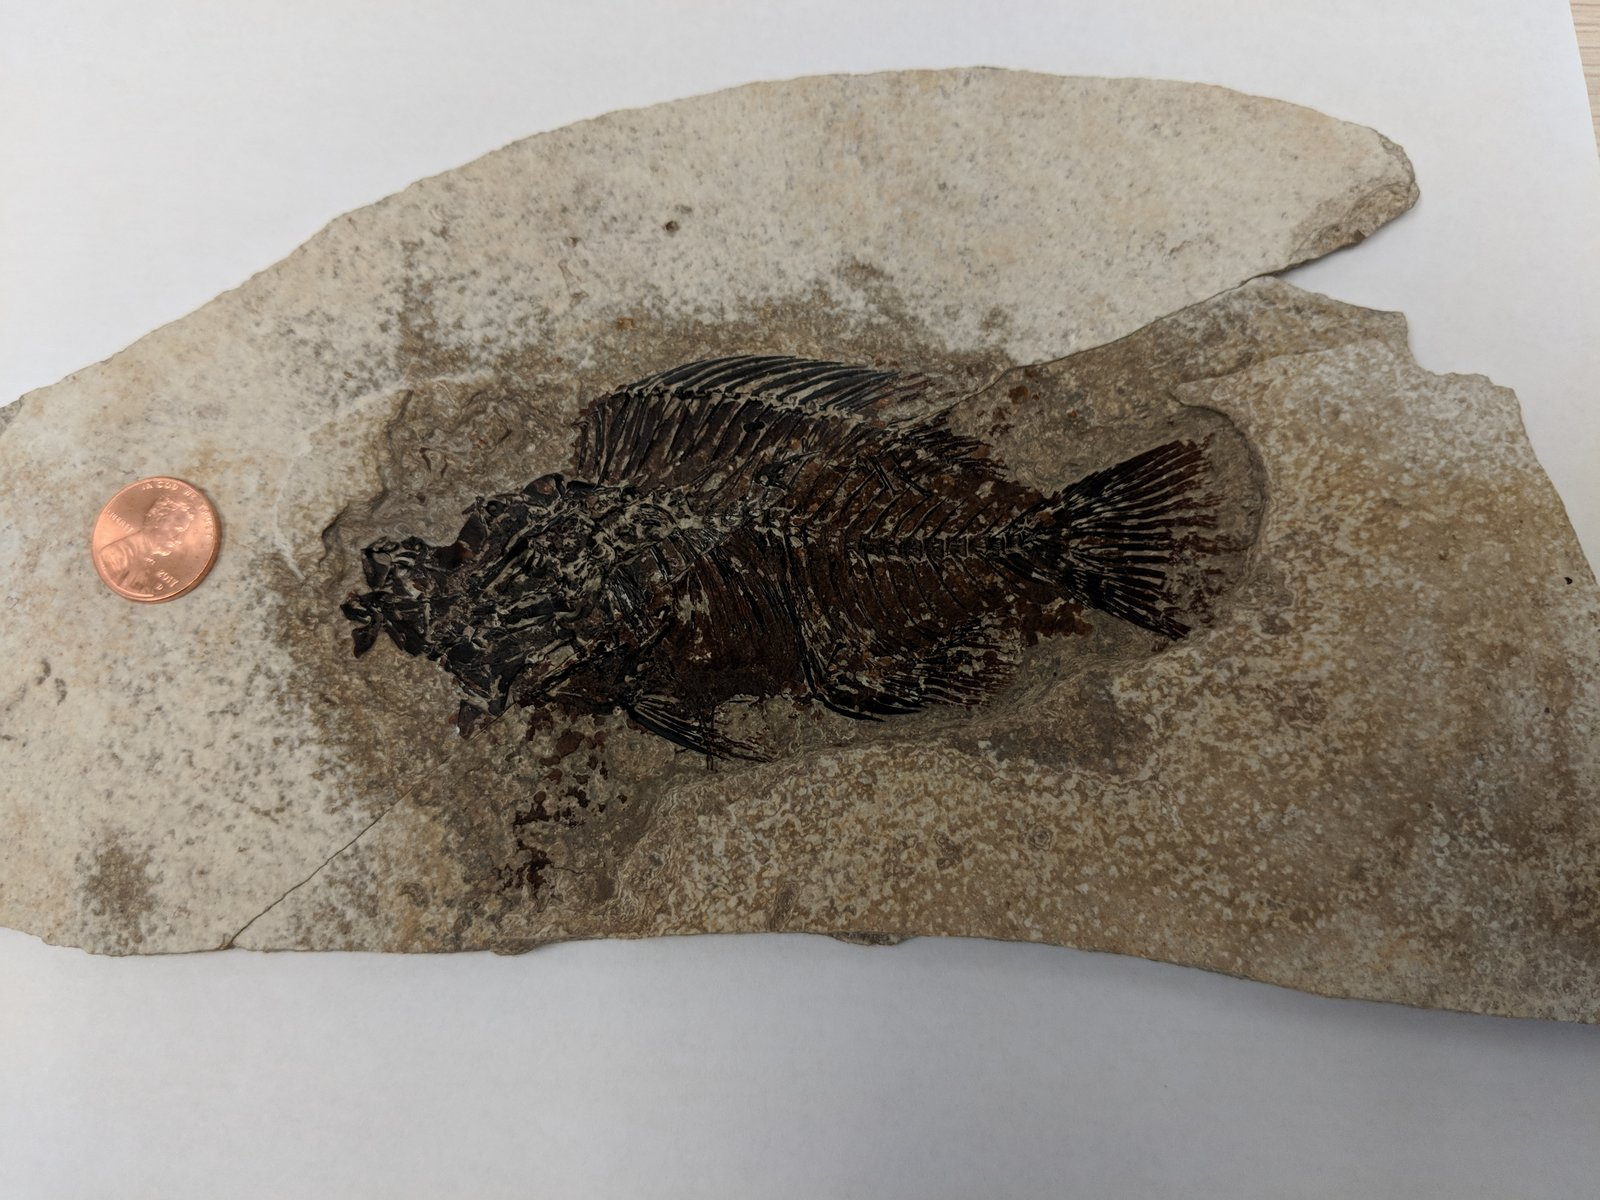 Split specimen from Green River in WY. Fossil seen in between layers.